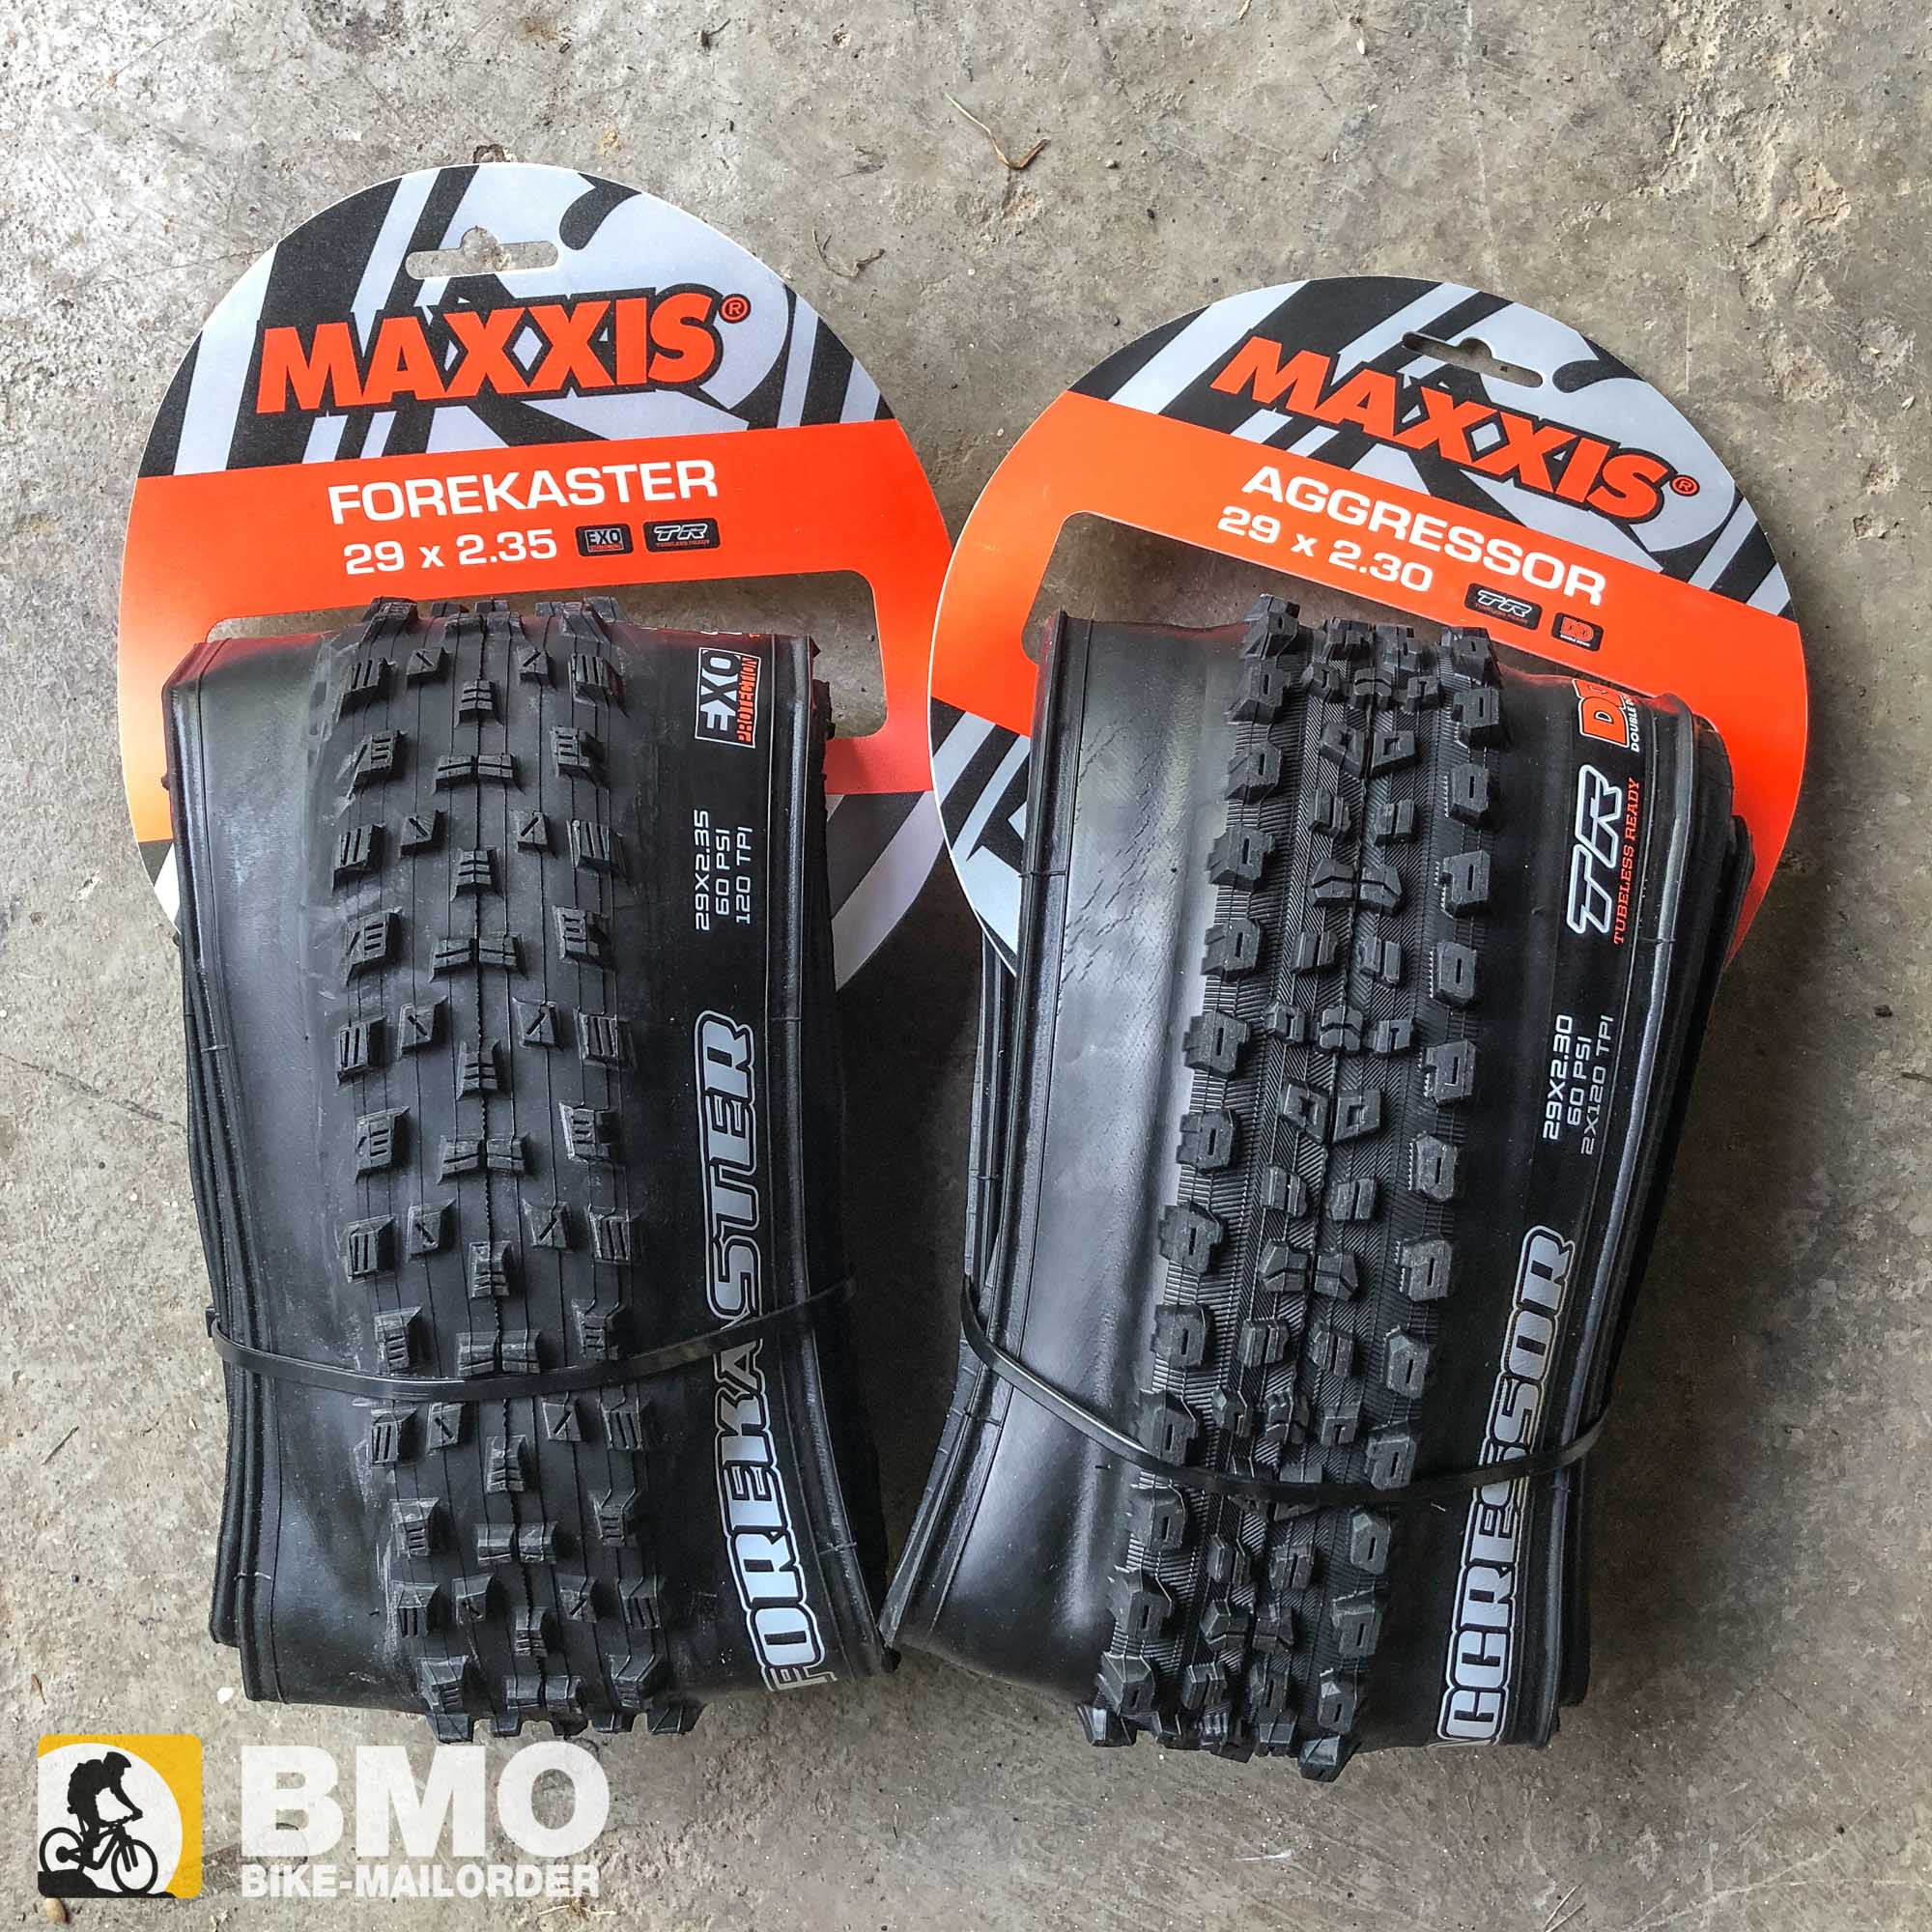 Bike-Mailorder-Pepis-Tire-Noodle-Test